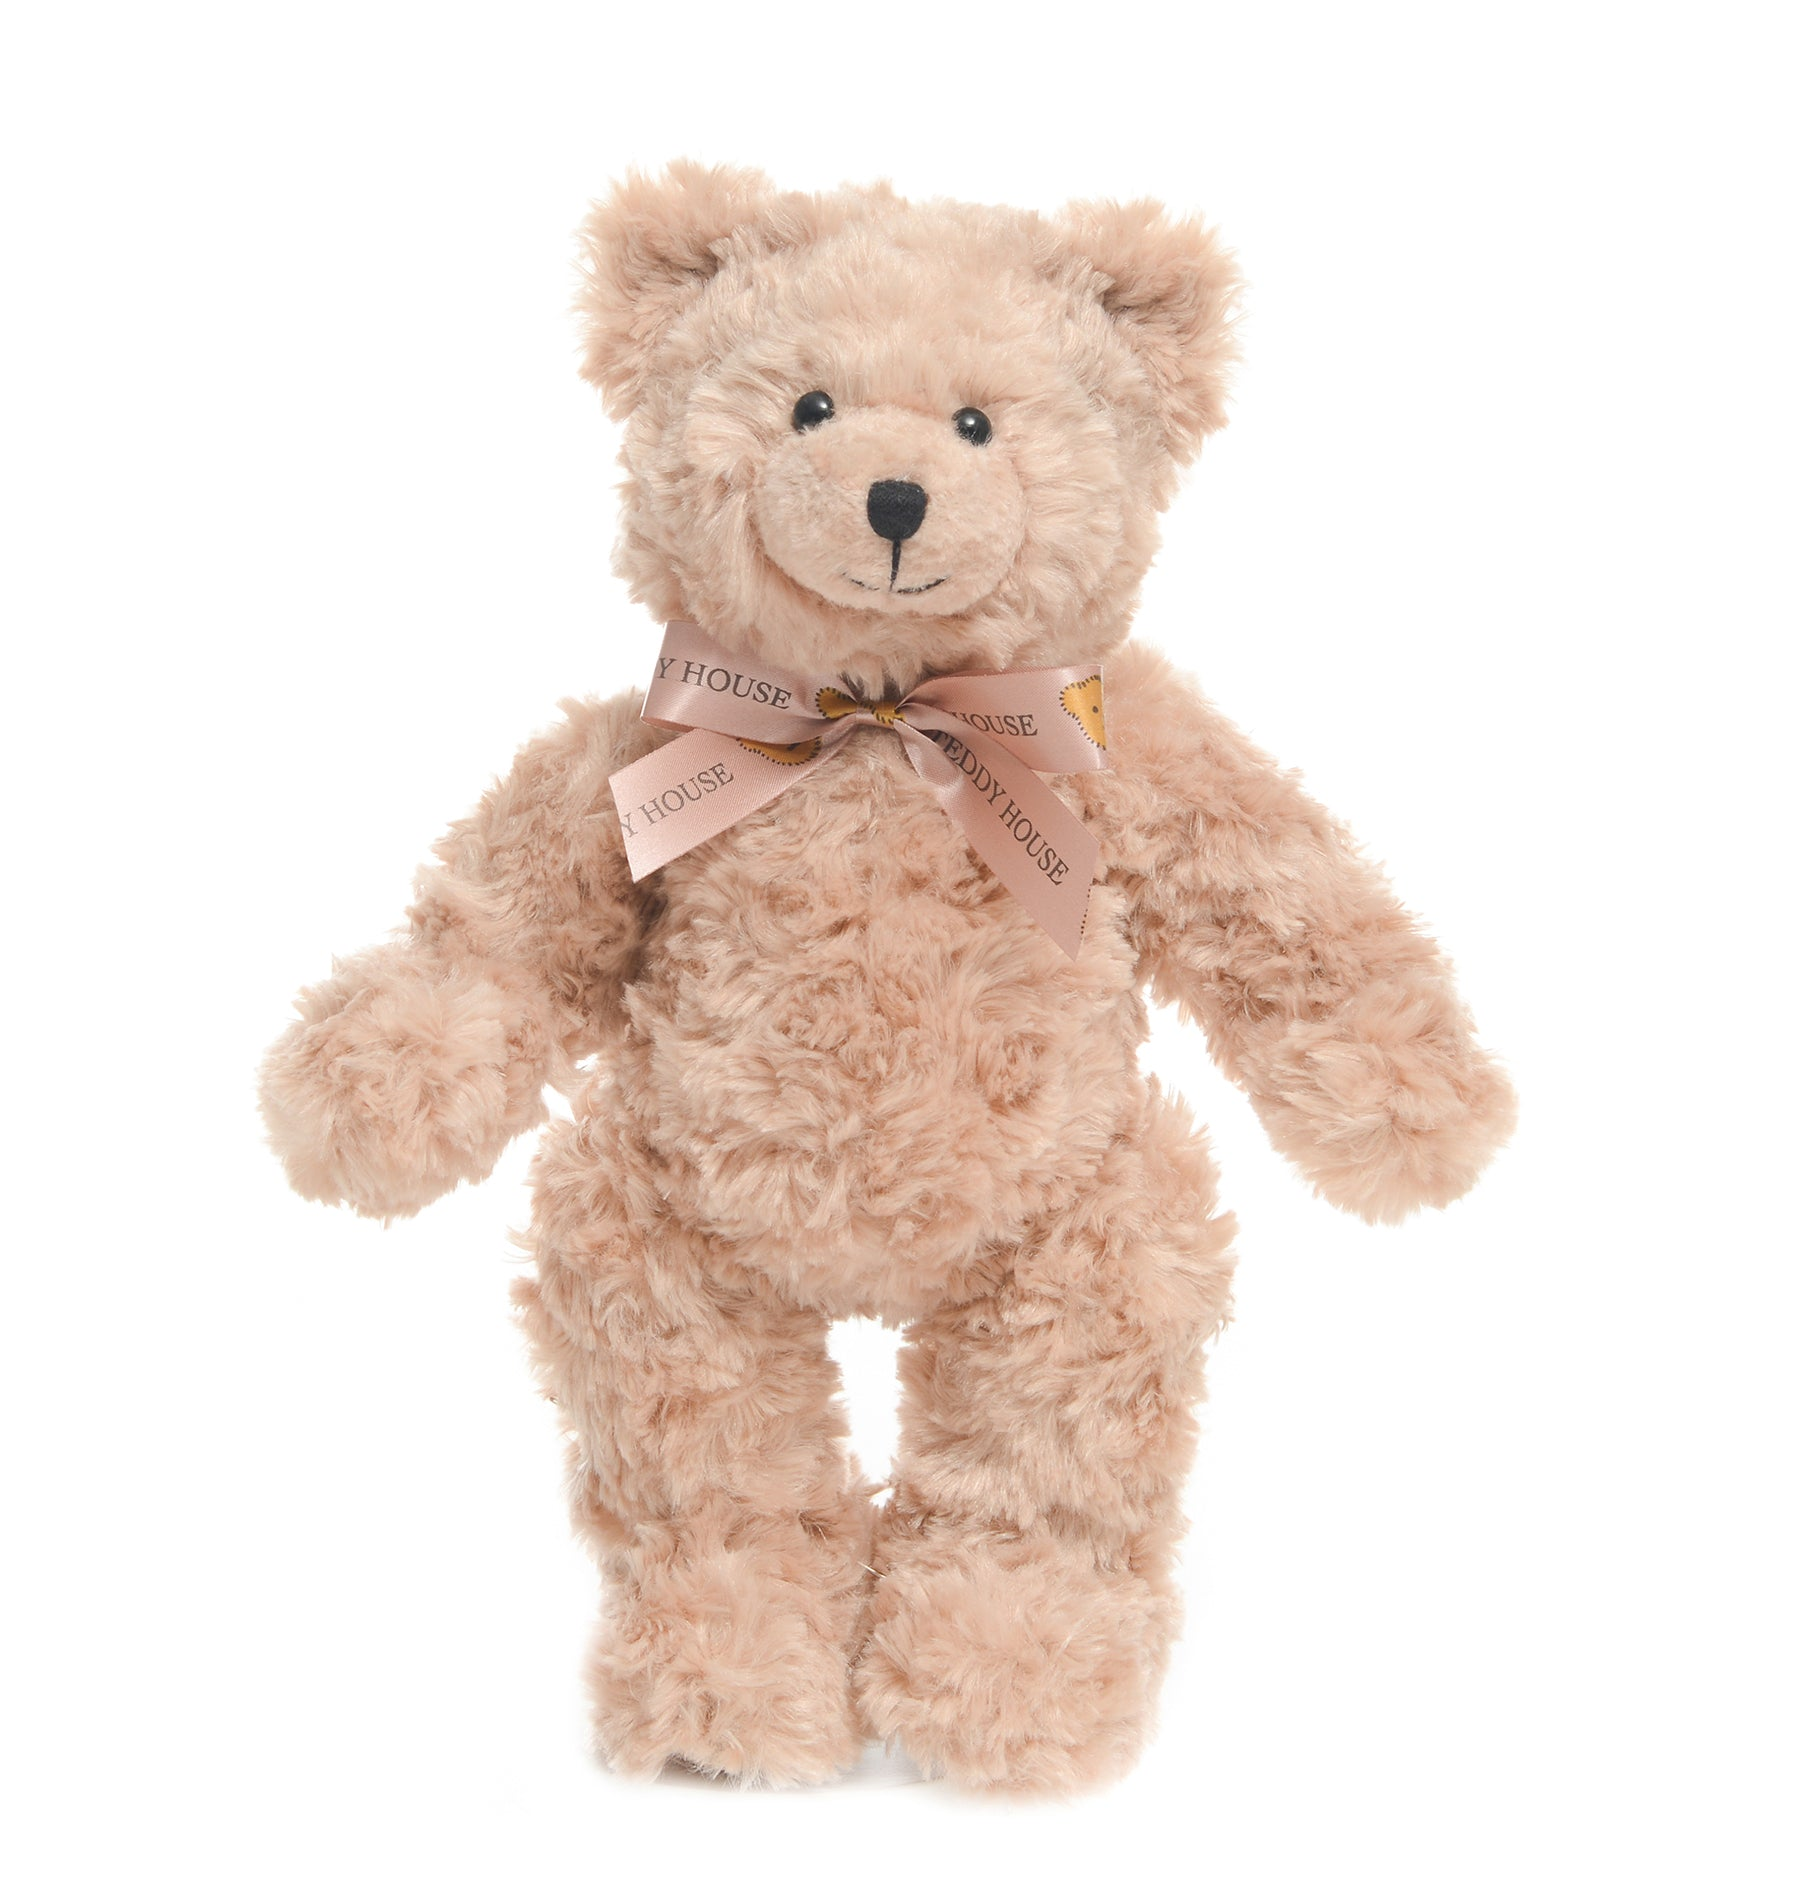 TEDDY HOUSE BONEKA TEDDY BEAR JOSEPH BEAR 14 INCHI